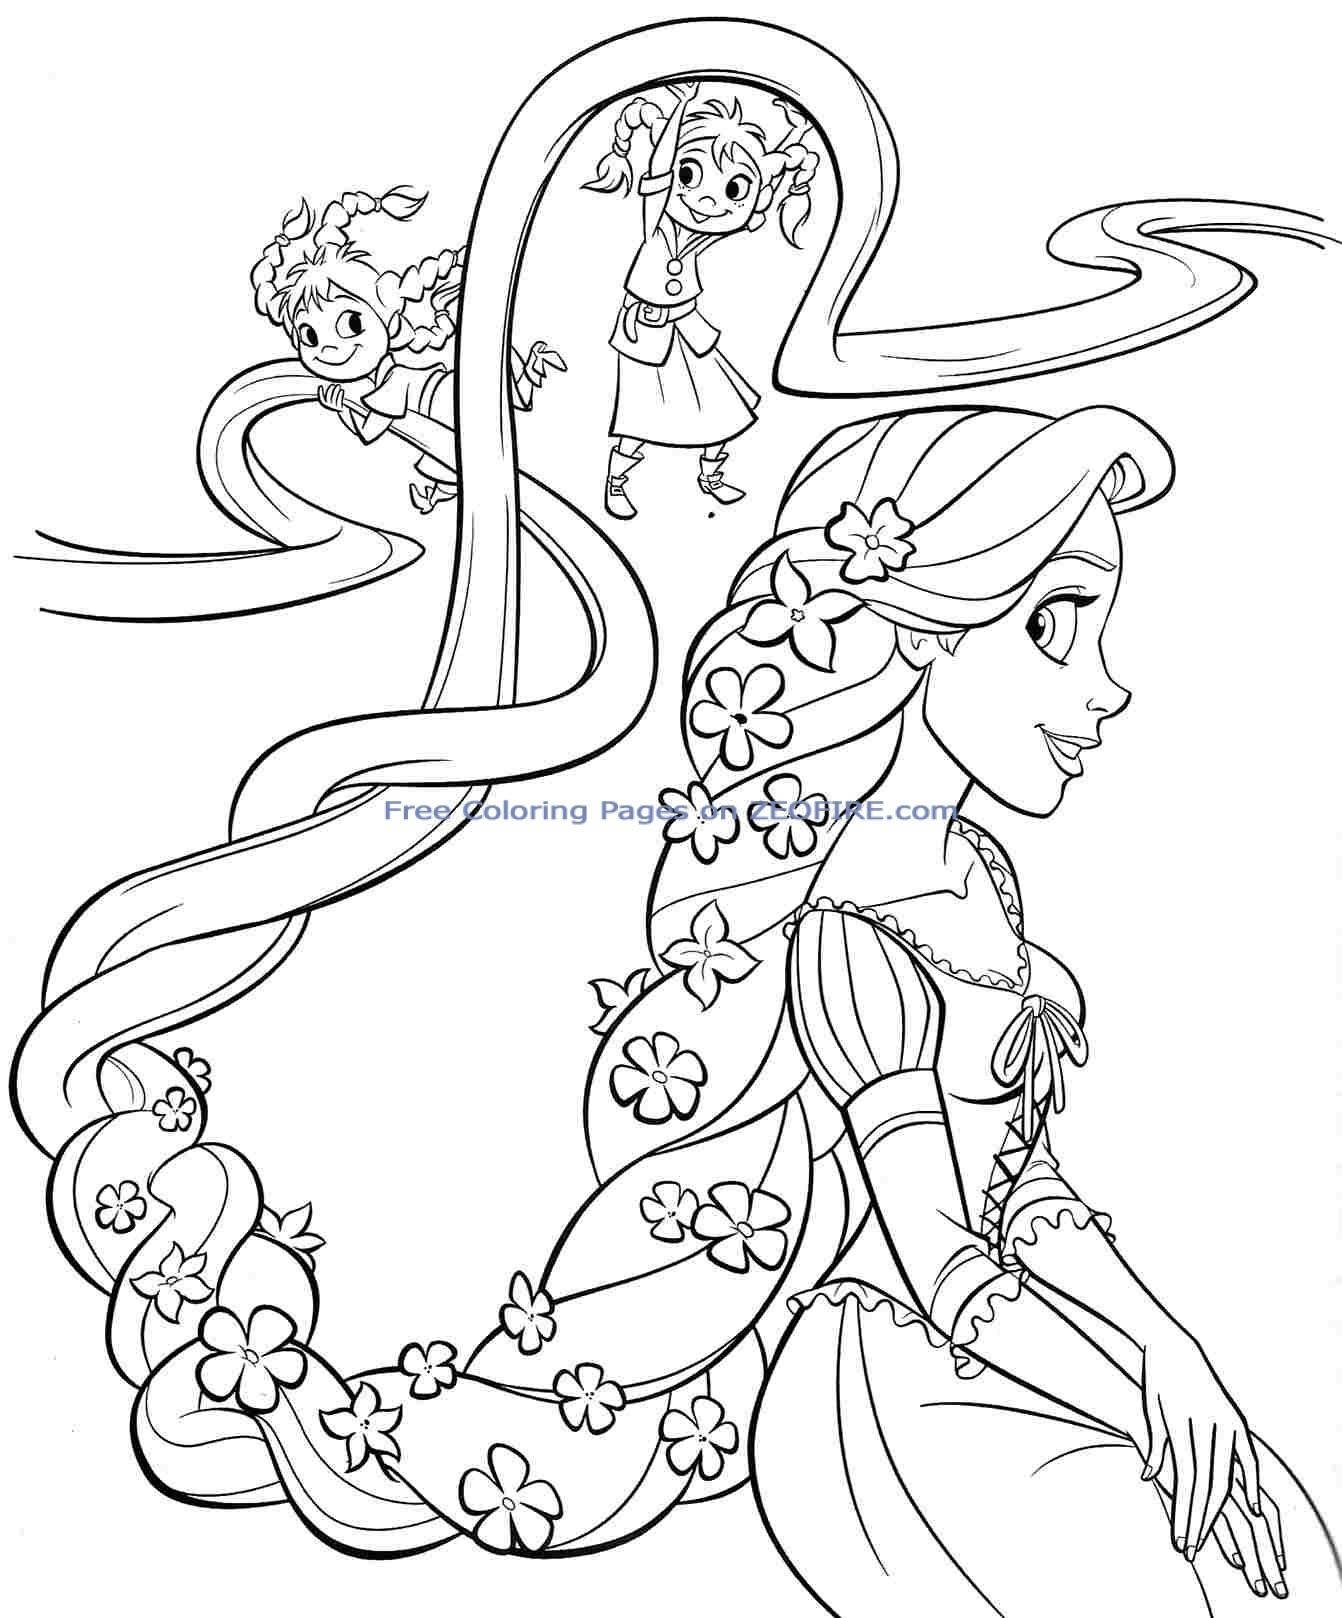 1342x1618 Disney Couples Coloring Pages Collection Coloring For Kids